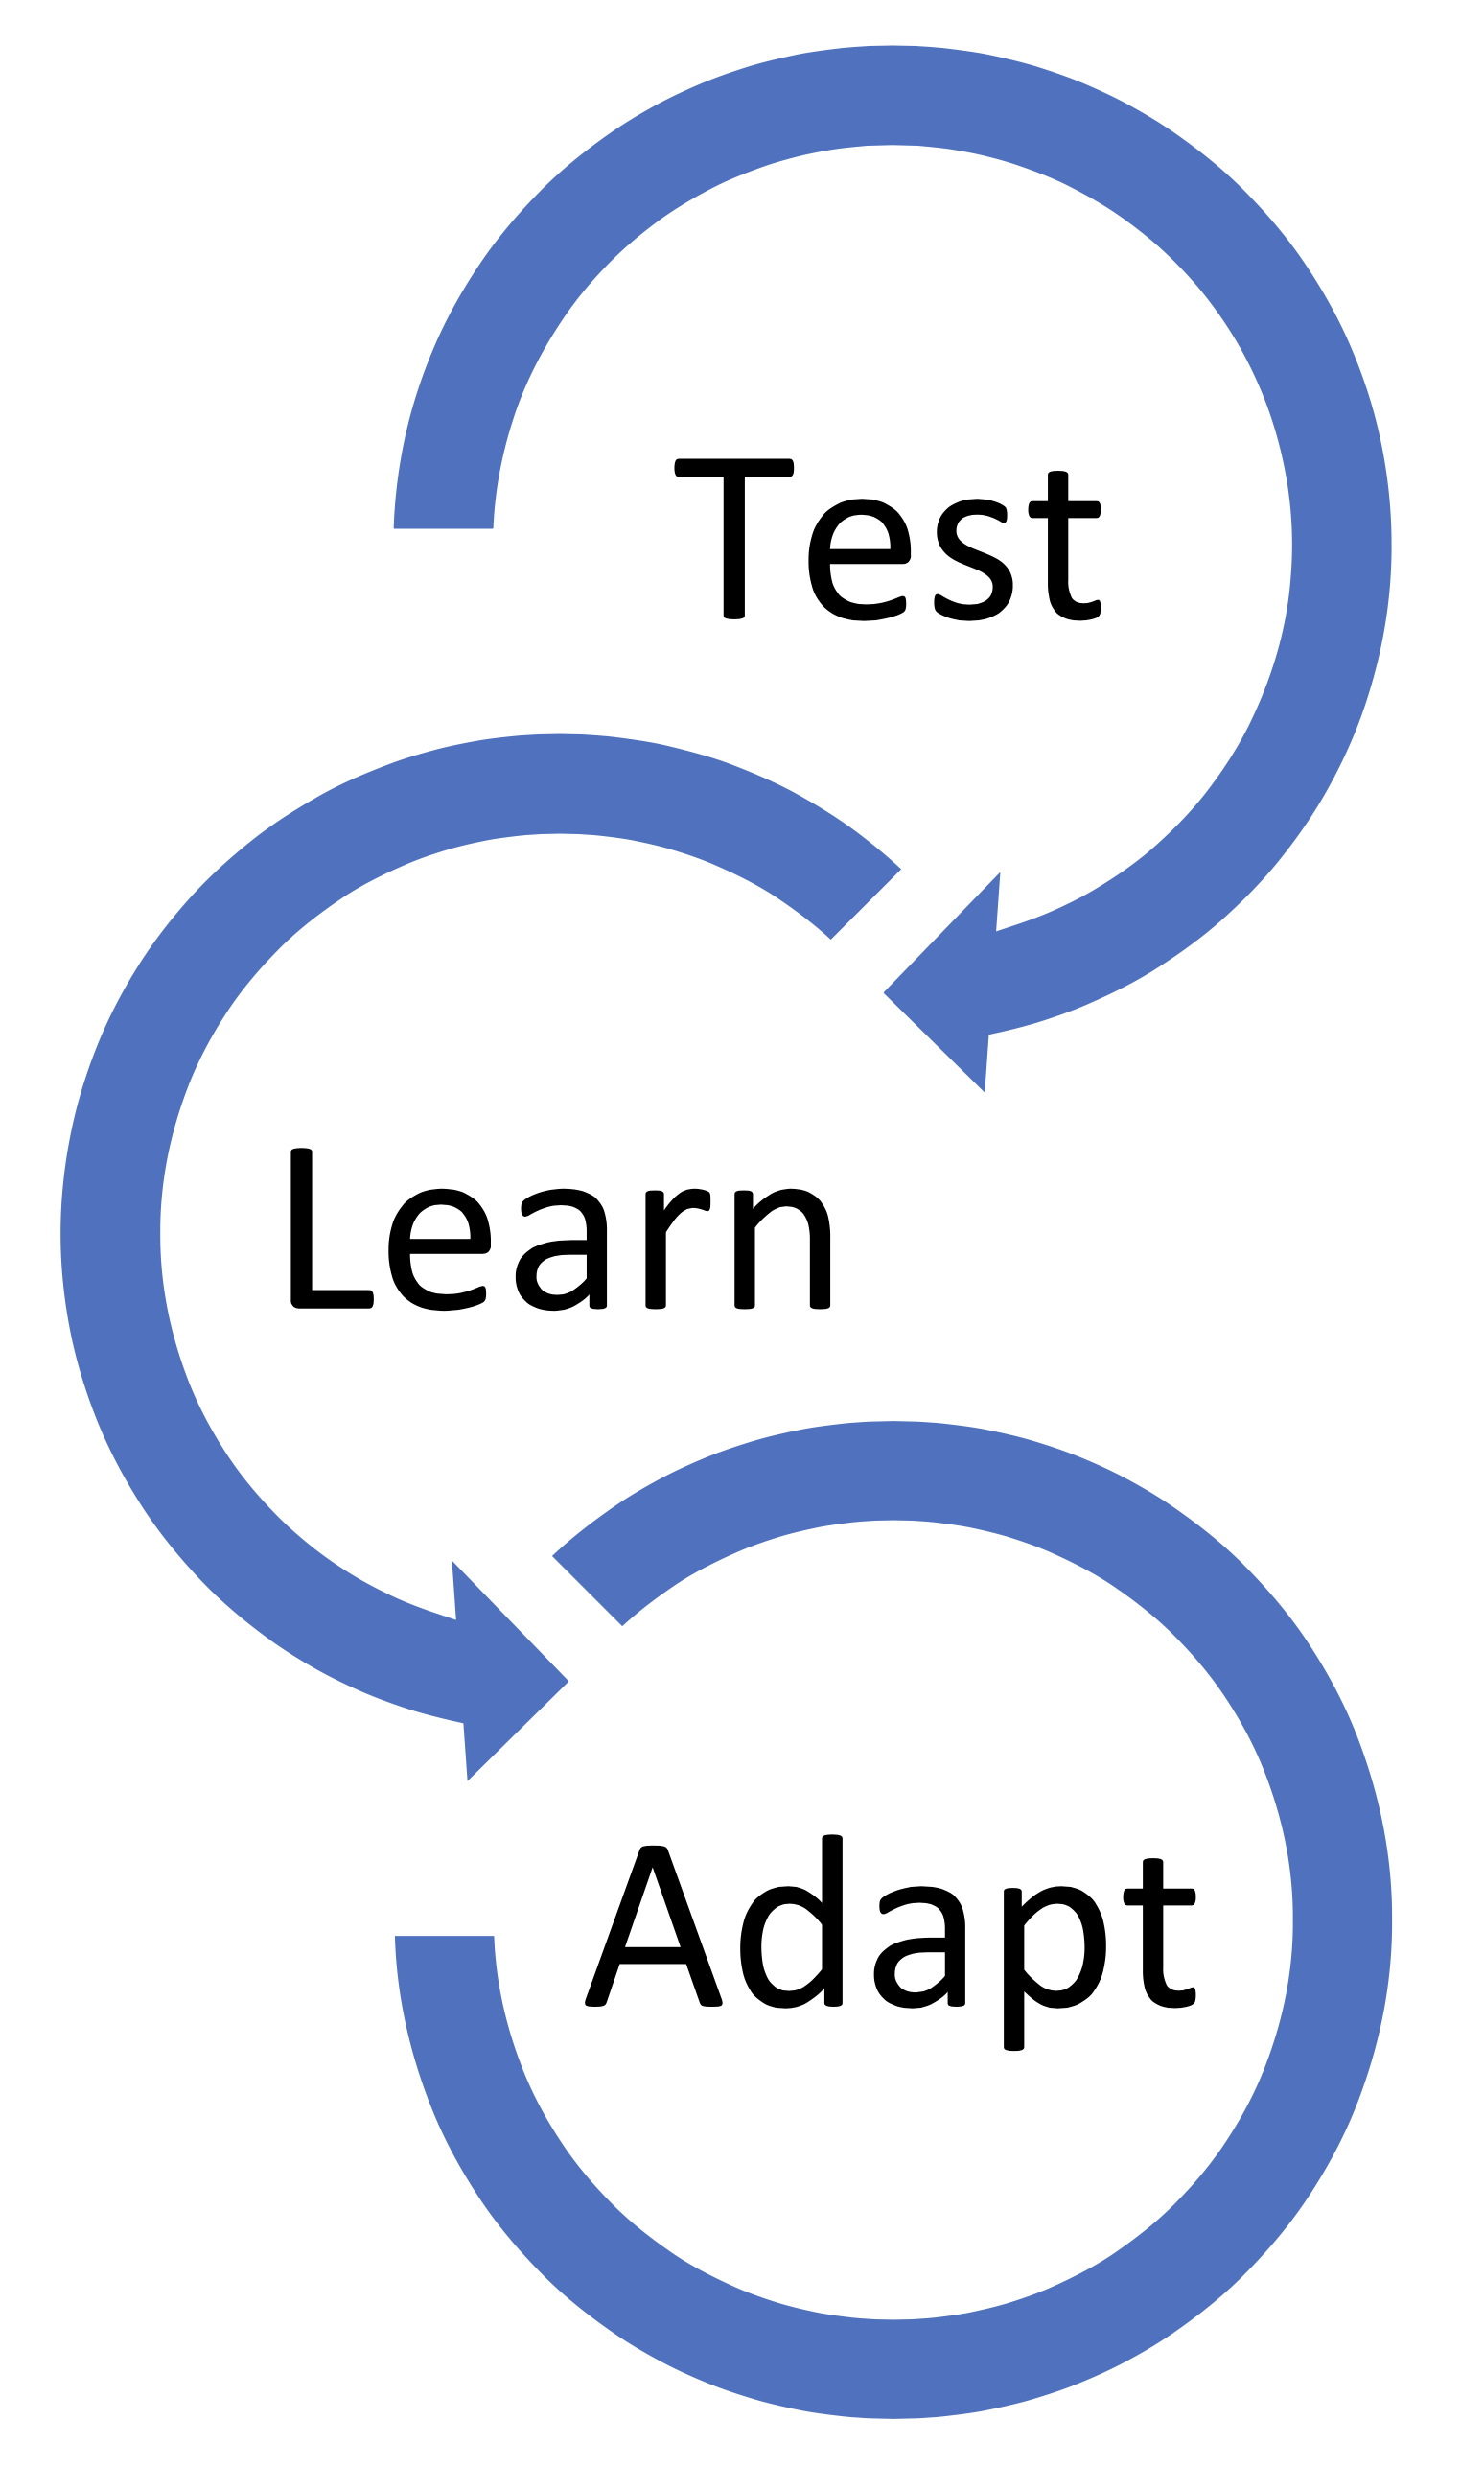 Test - Learn - Adapt